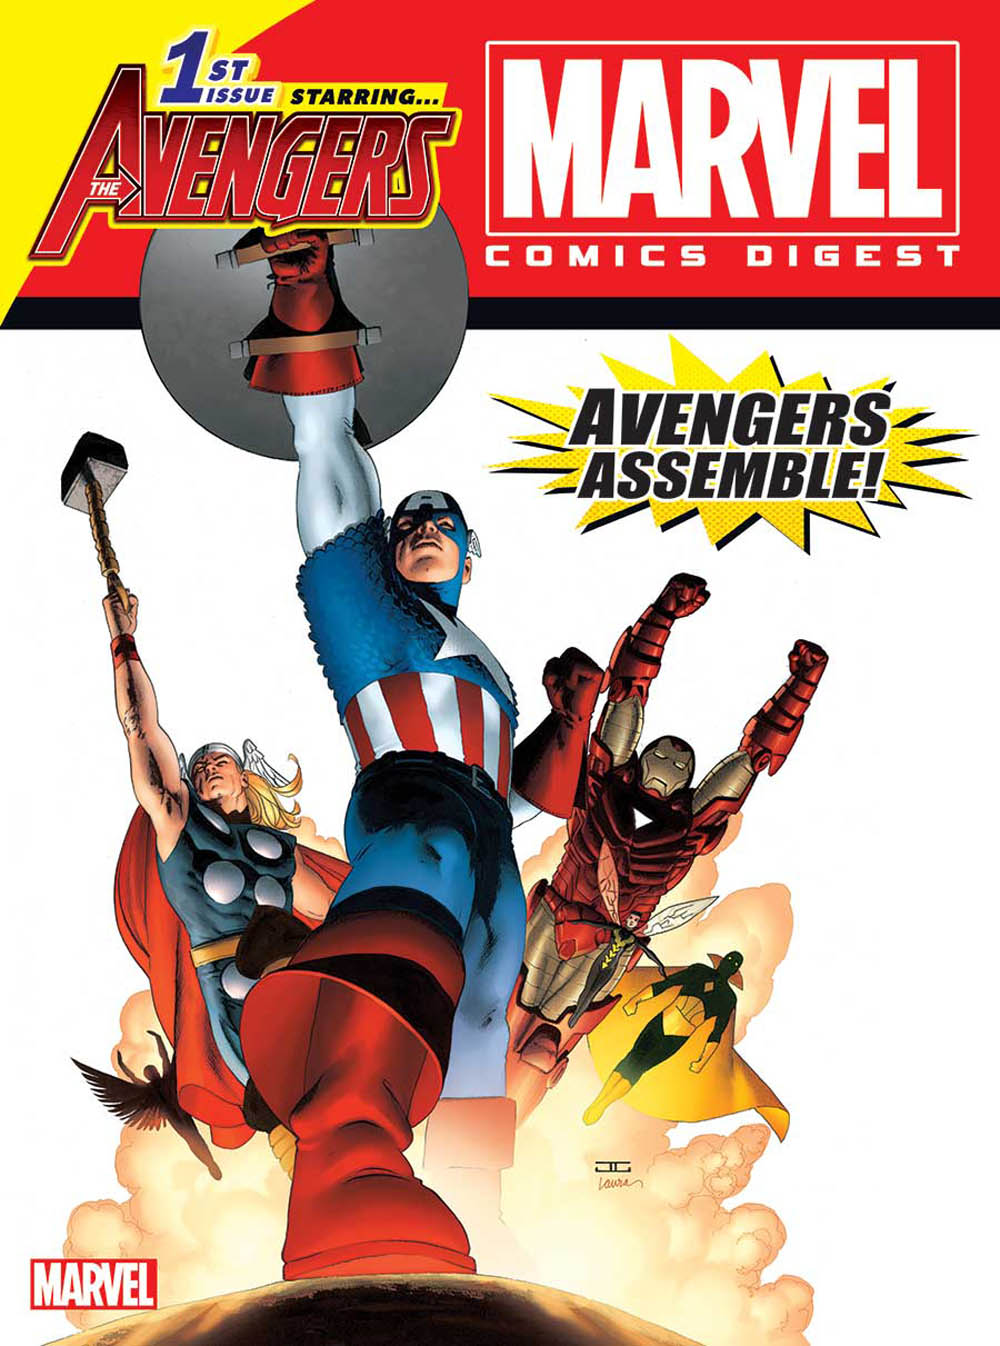 John persons comics for sale - Marvel Comics Best Selling Heroes Are Back In The Ever Popular Digest Format This Second Issue Spotlights The Blockbuster Superhero Team The Avengers